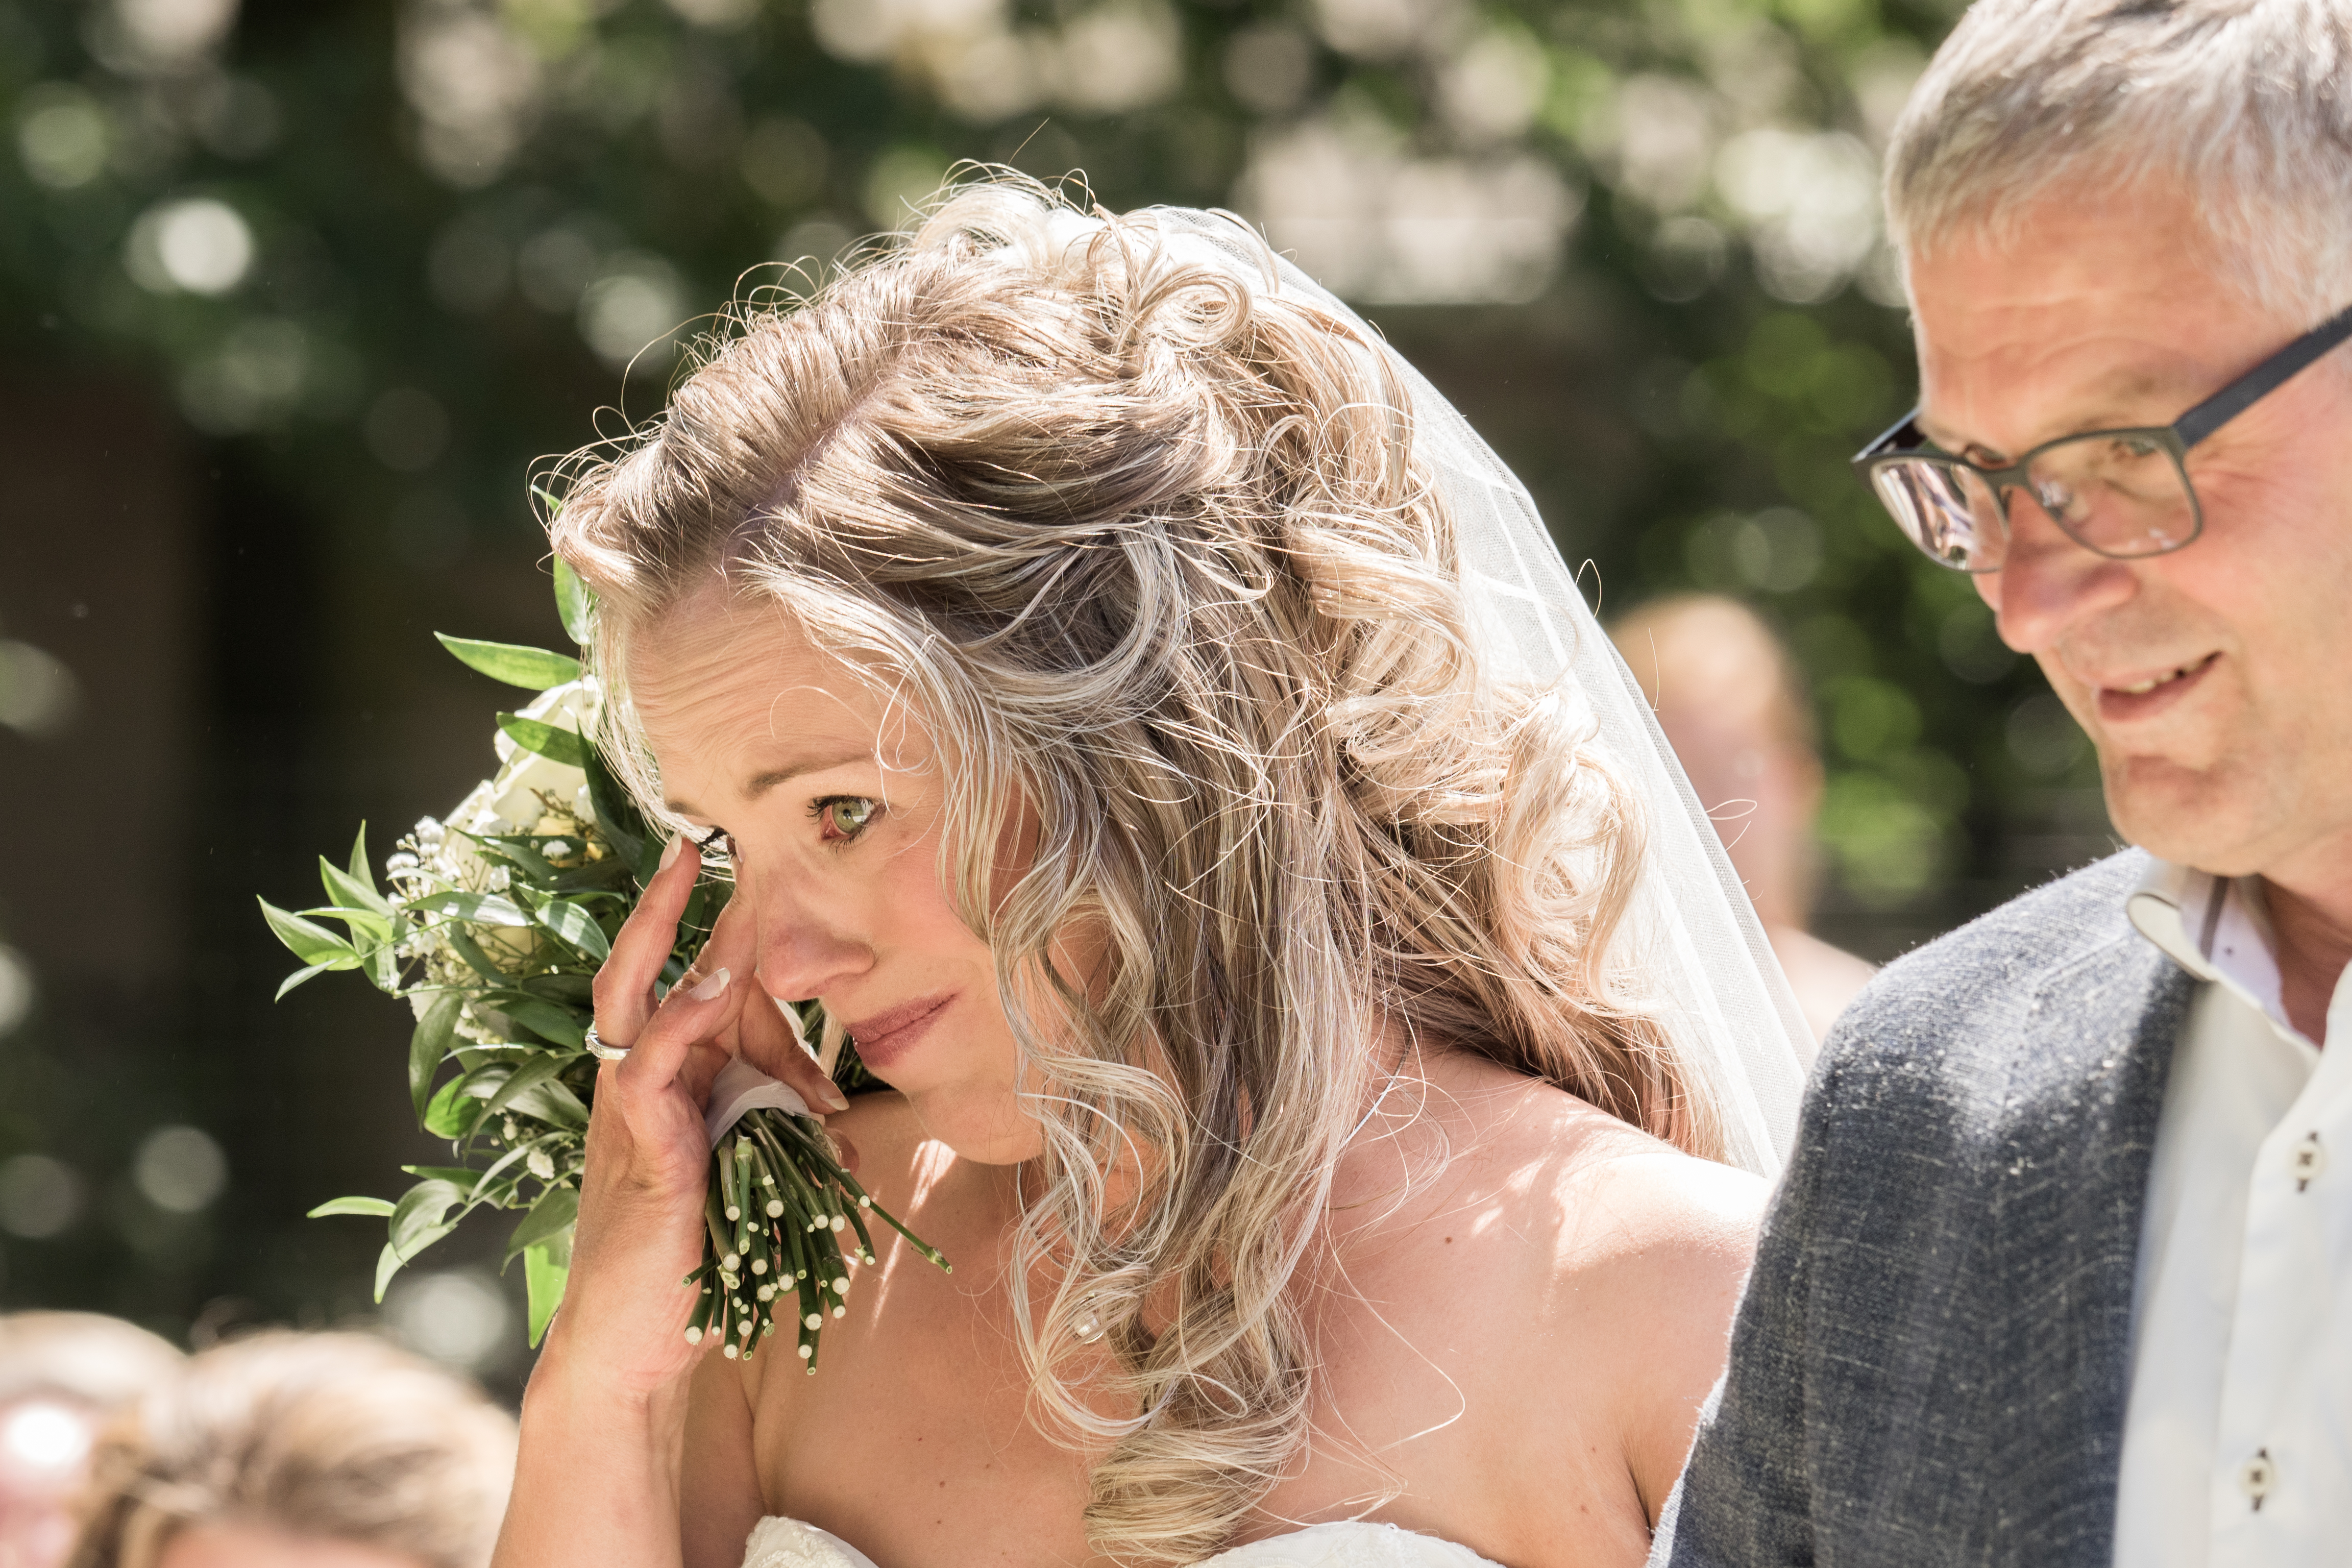 wedding, tears, yes, kaartje byzonder, bijzonder, wedding, shoot, photography, Reusel